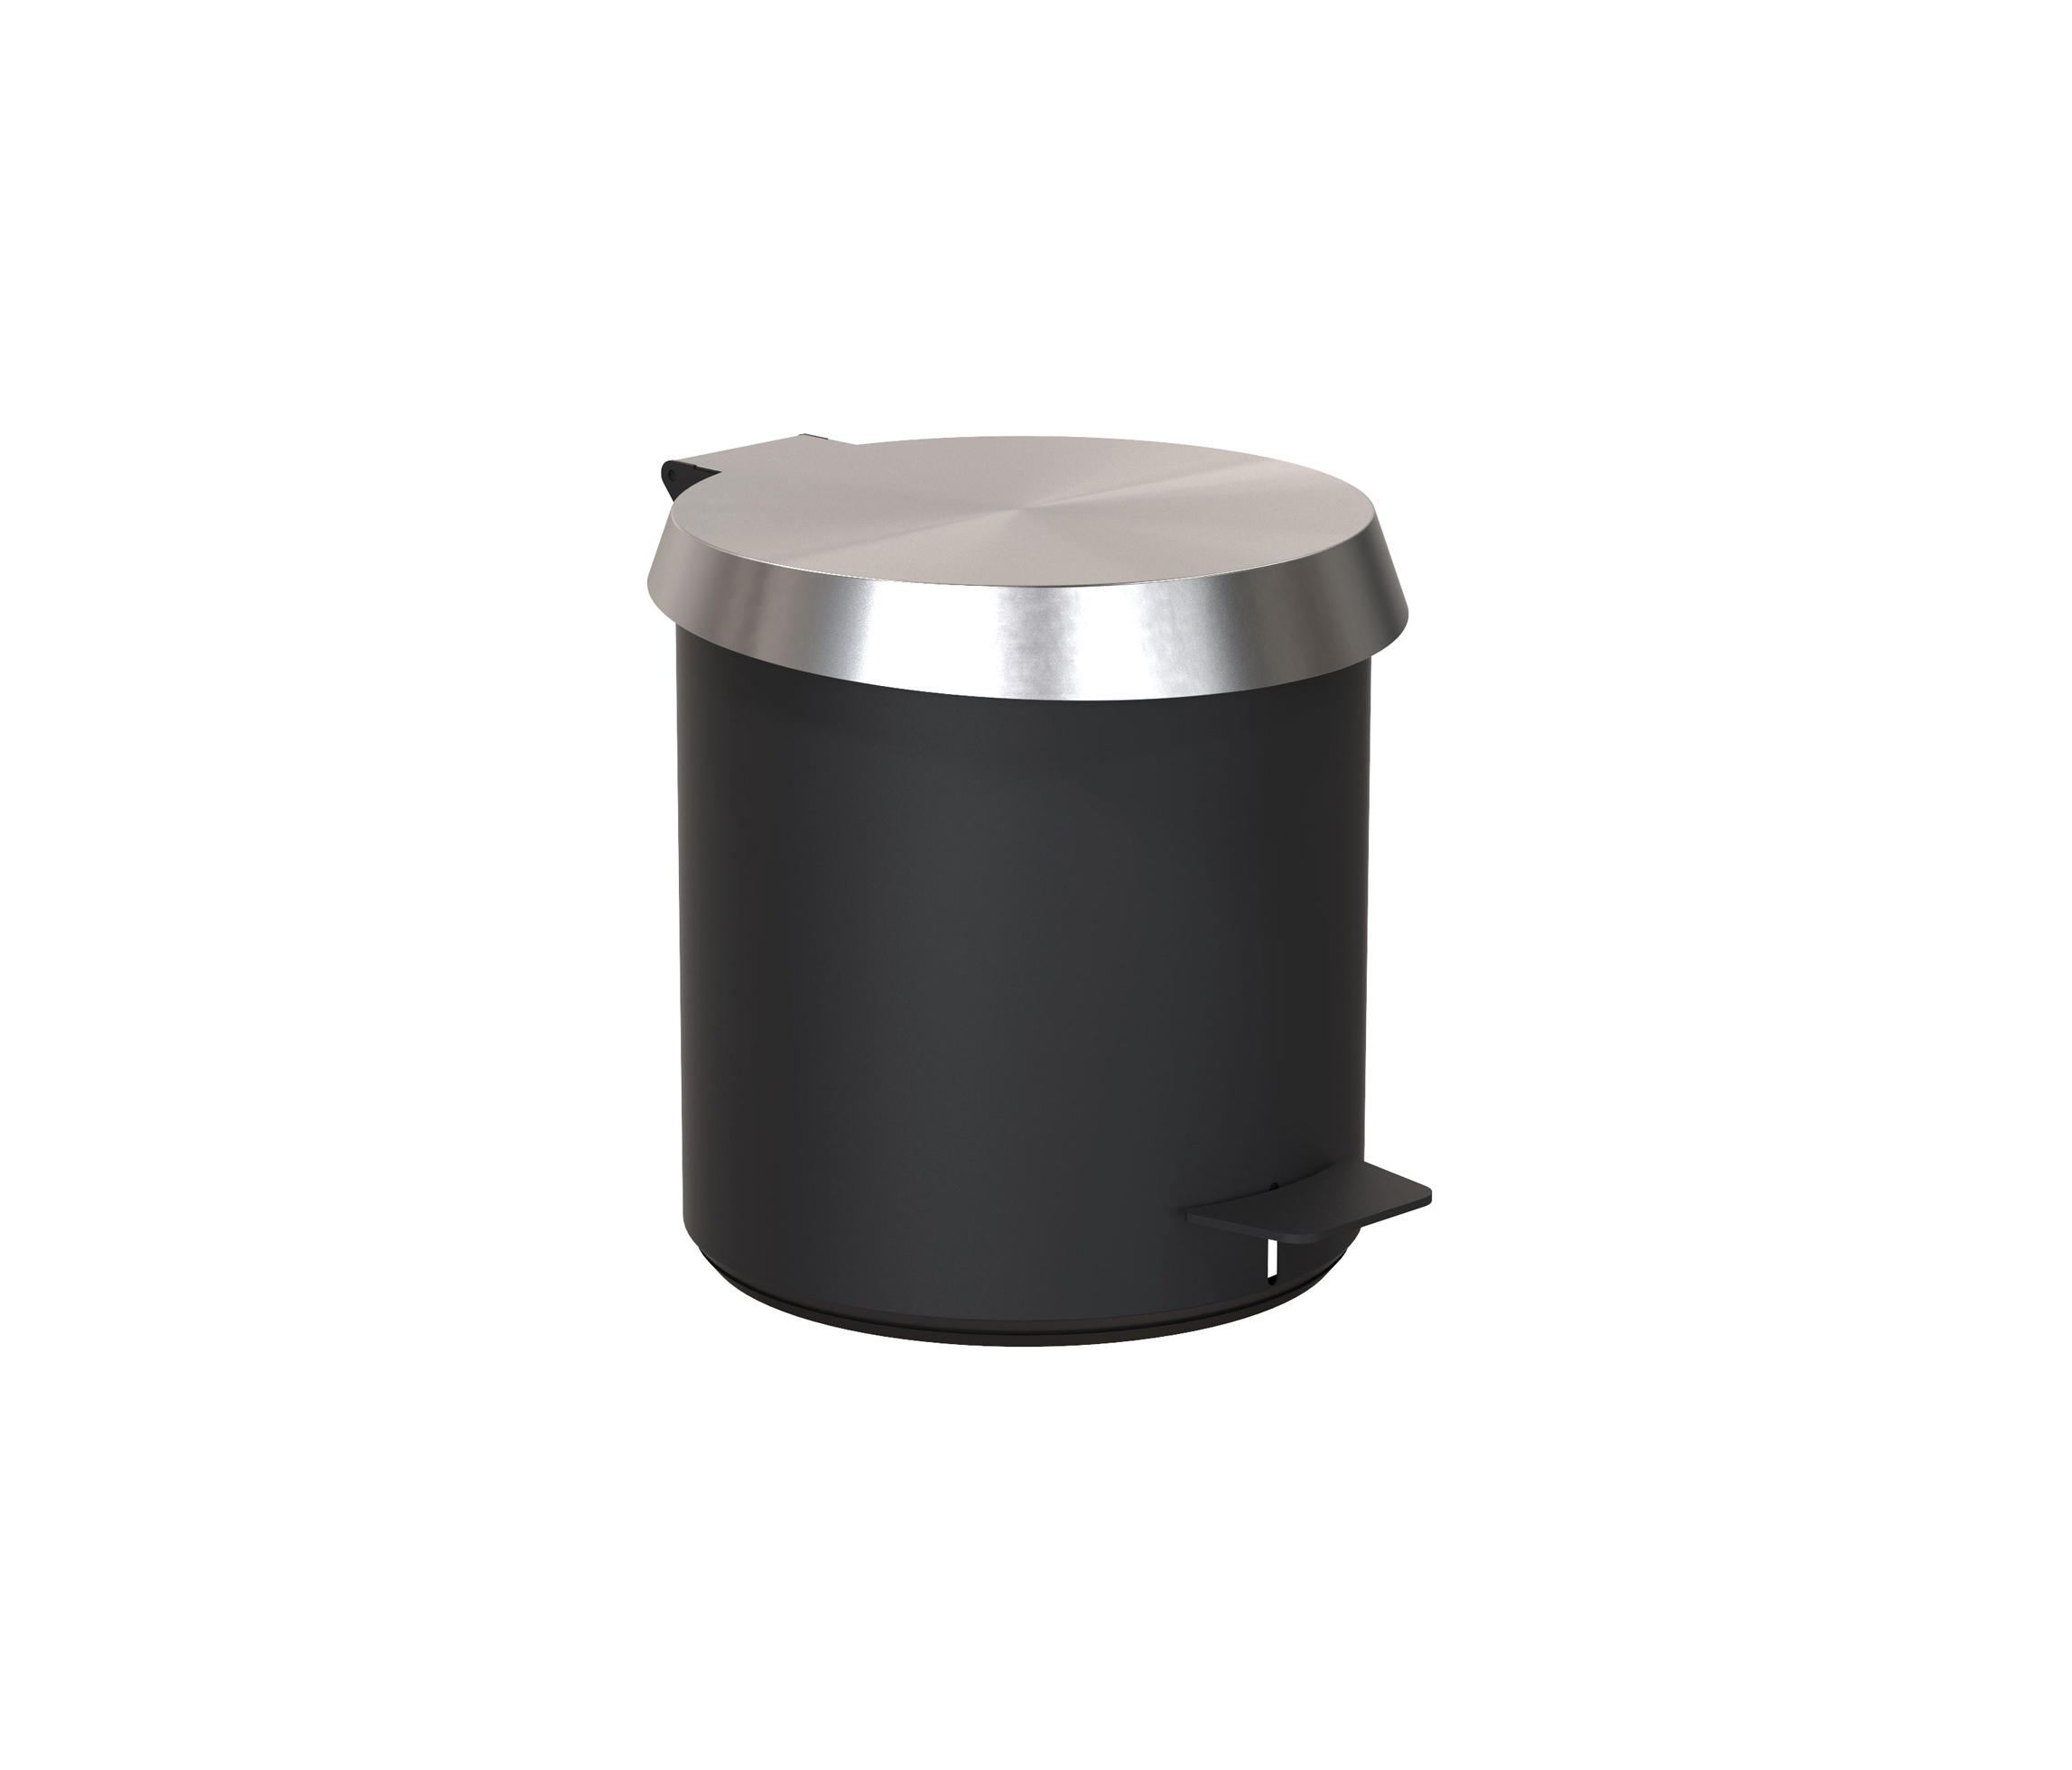 PEDAL BIN 250 - Waste baskets from Frost | Architonic